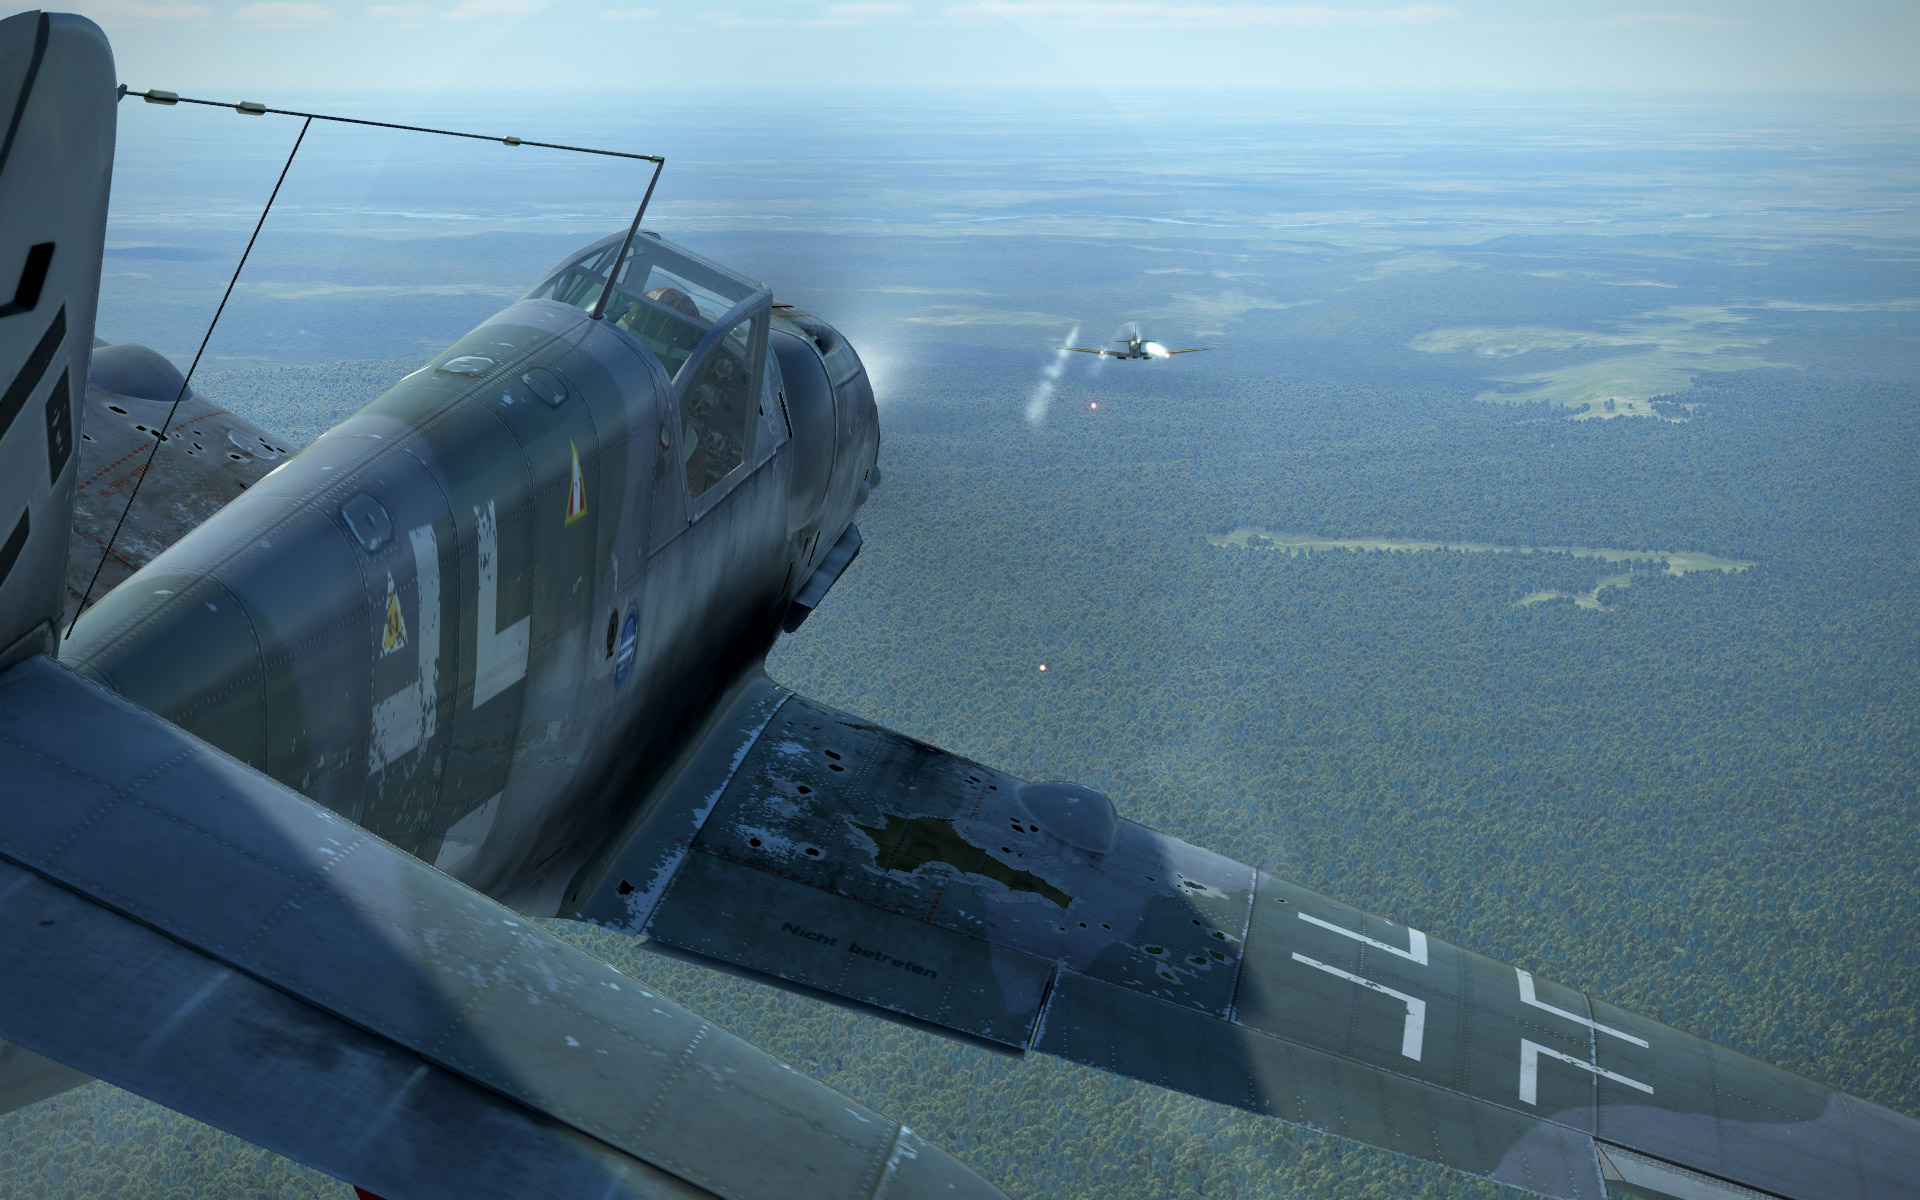 Changes are coming to IL-2's Steam integration – Stormbirds